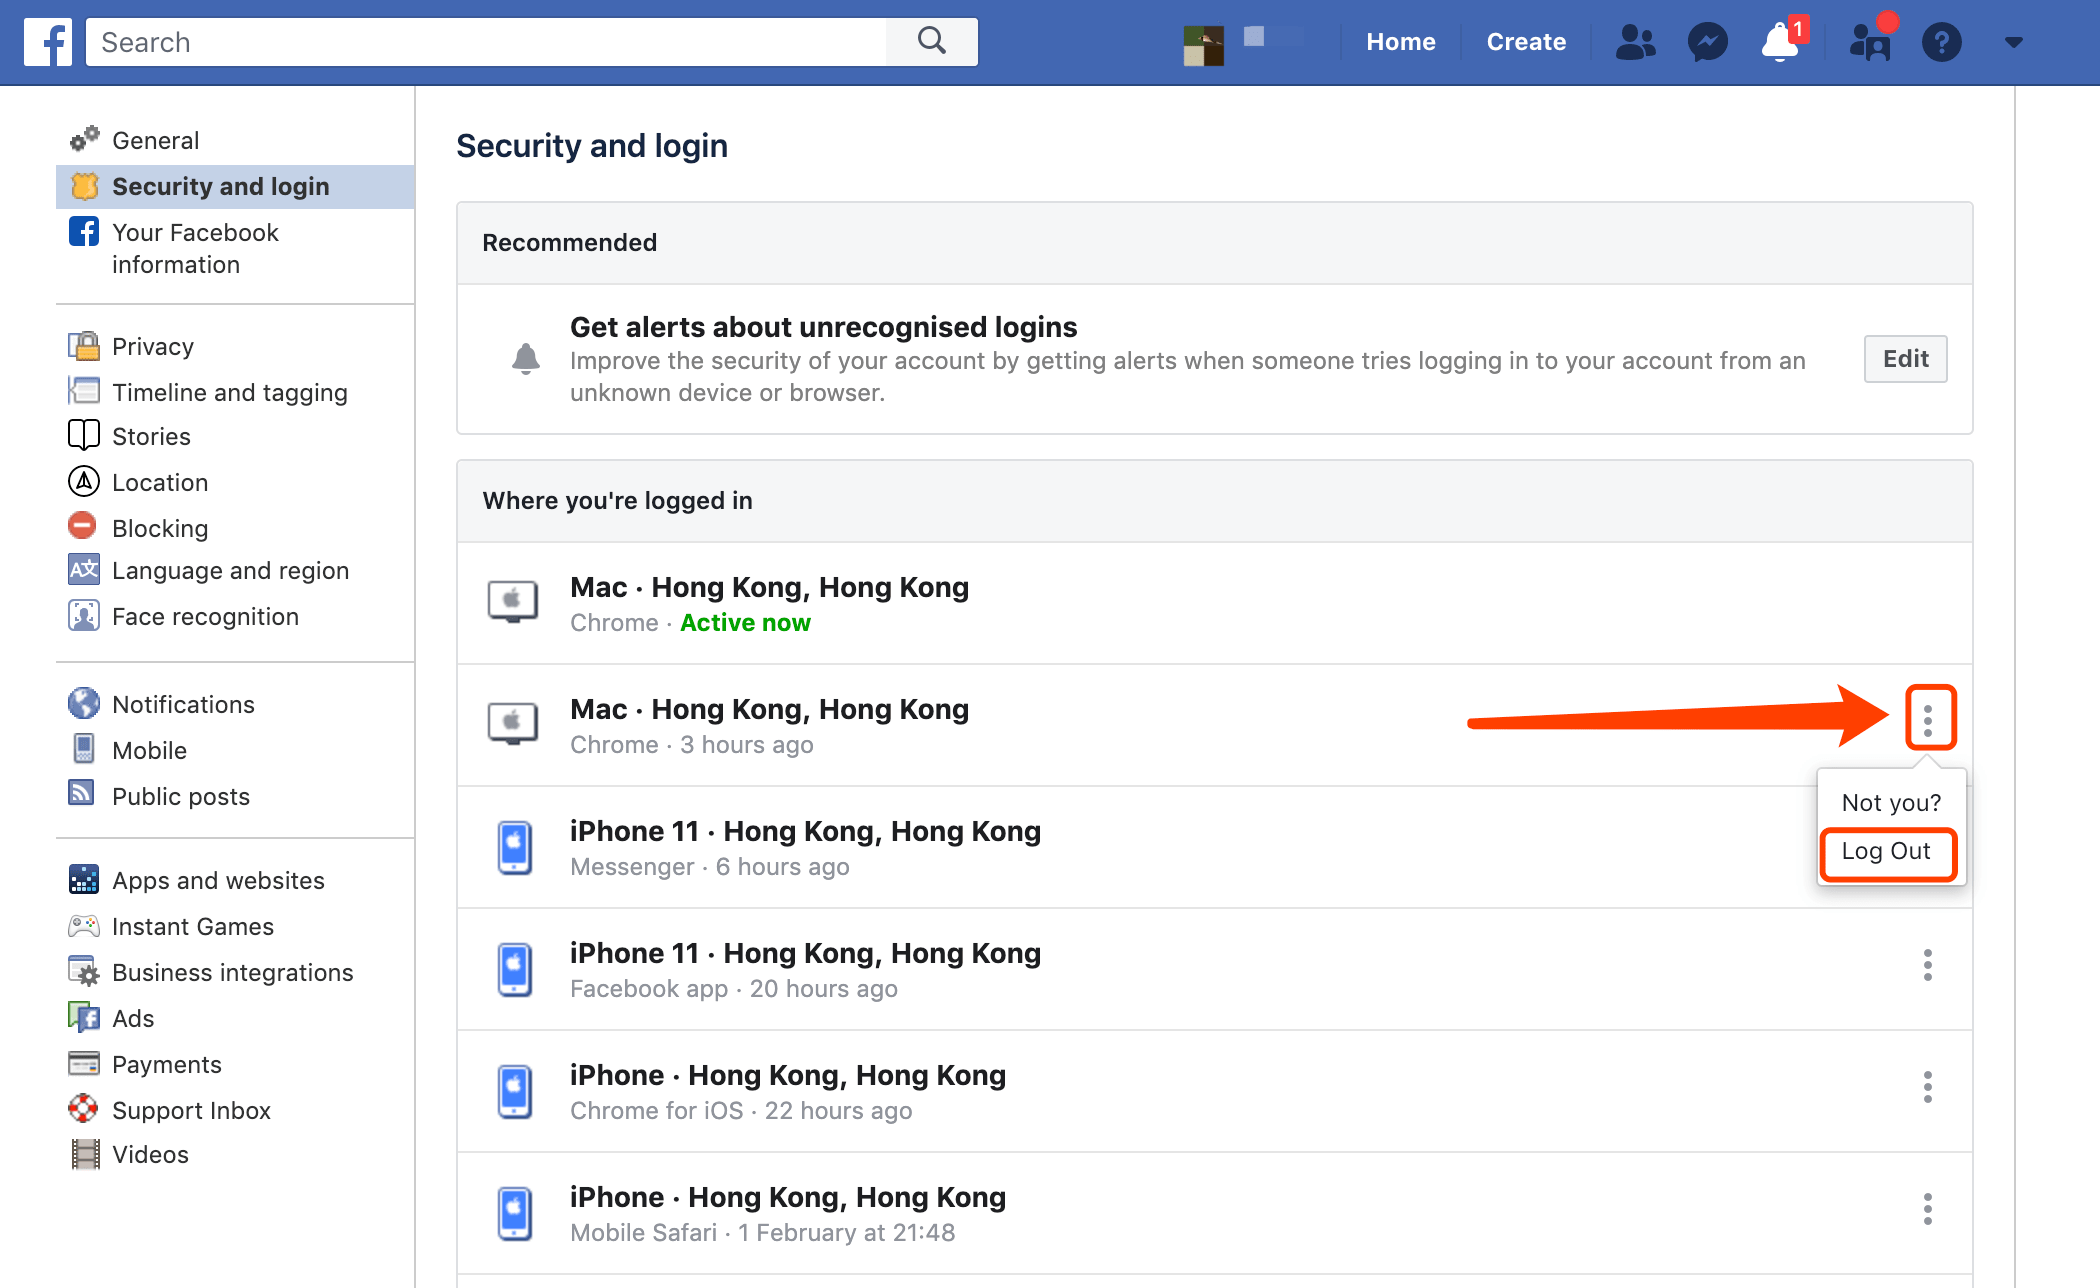 log-out-if-not-your-activity-digital-marketing-agency-hong-kong-facebook